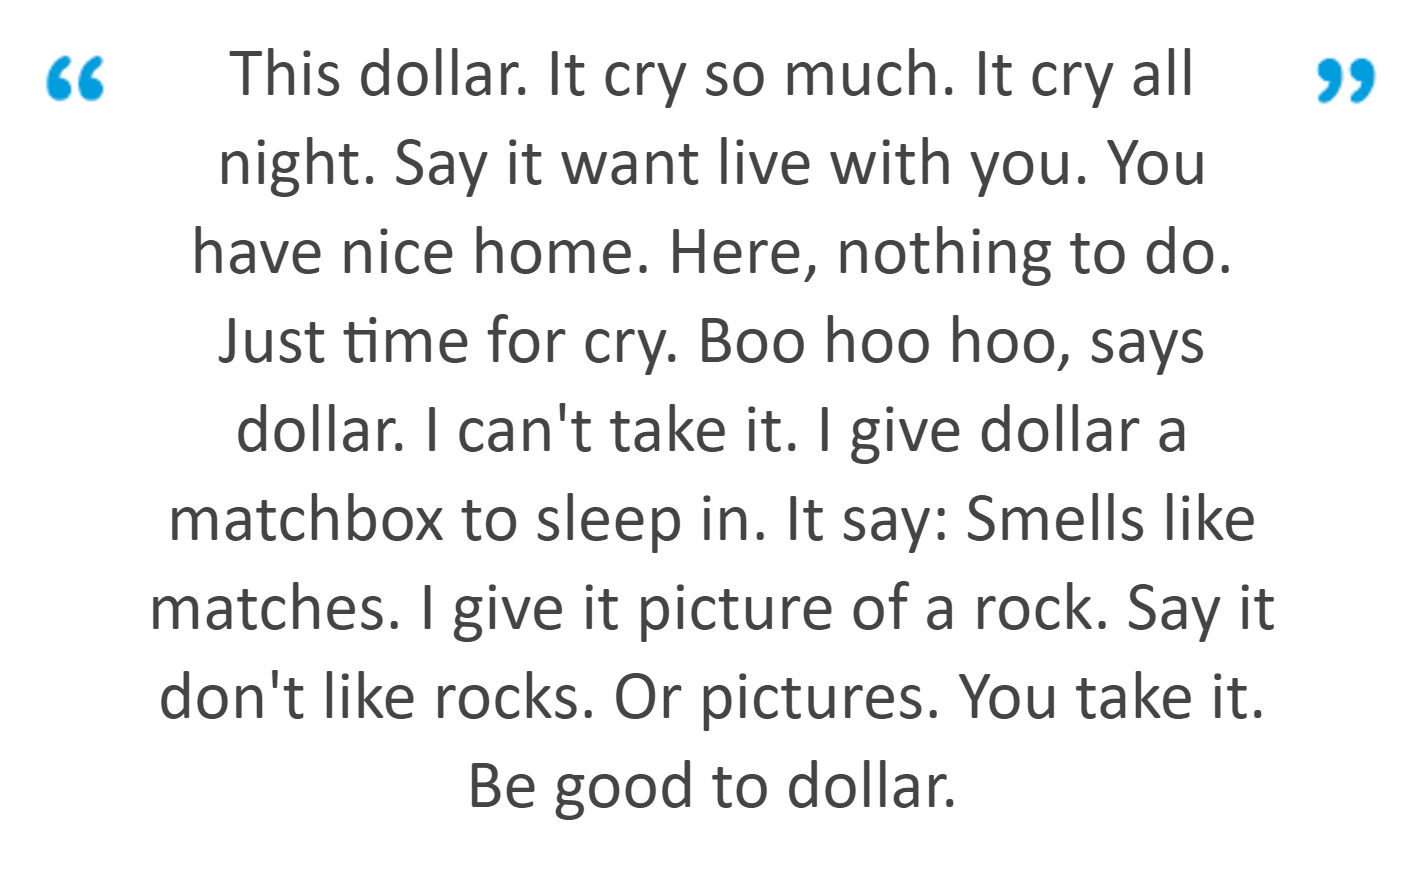 This dollar. It cry so much. It cry all night. Say it want live with you. You have nice home. Here, nothing to do. Just time for cry. Boo hoo hoo, says dollar. I can't take it. I give dollar a matchbox to sleep in. It say: Smells like matches. I give it picture of a rock. Say it don't like rocks. Or pictures. You take it. Be good to dollar.